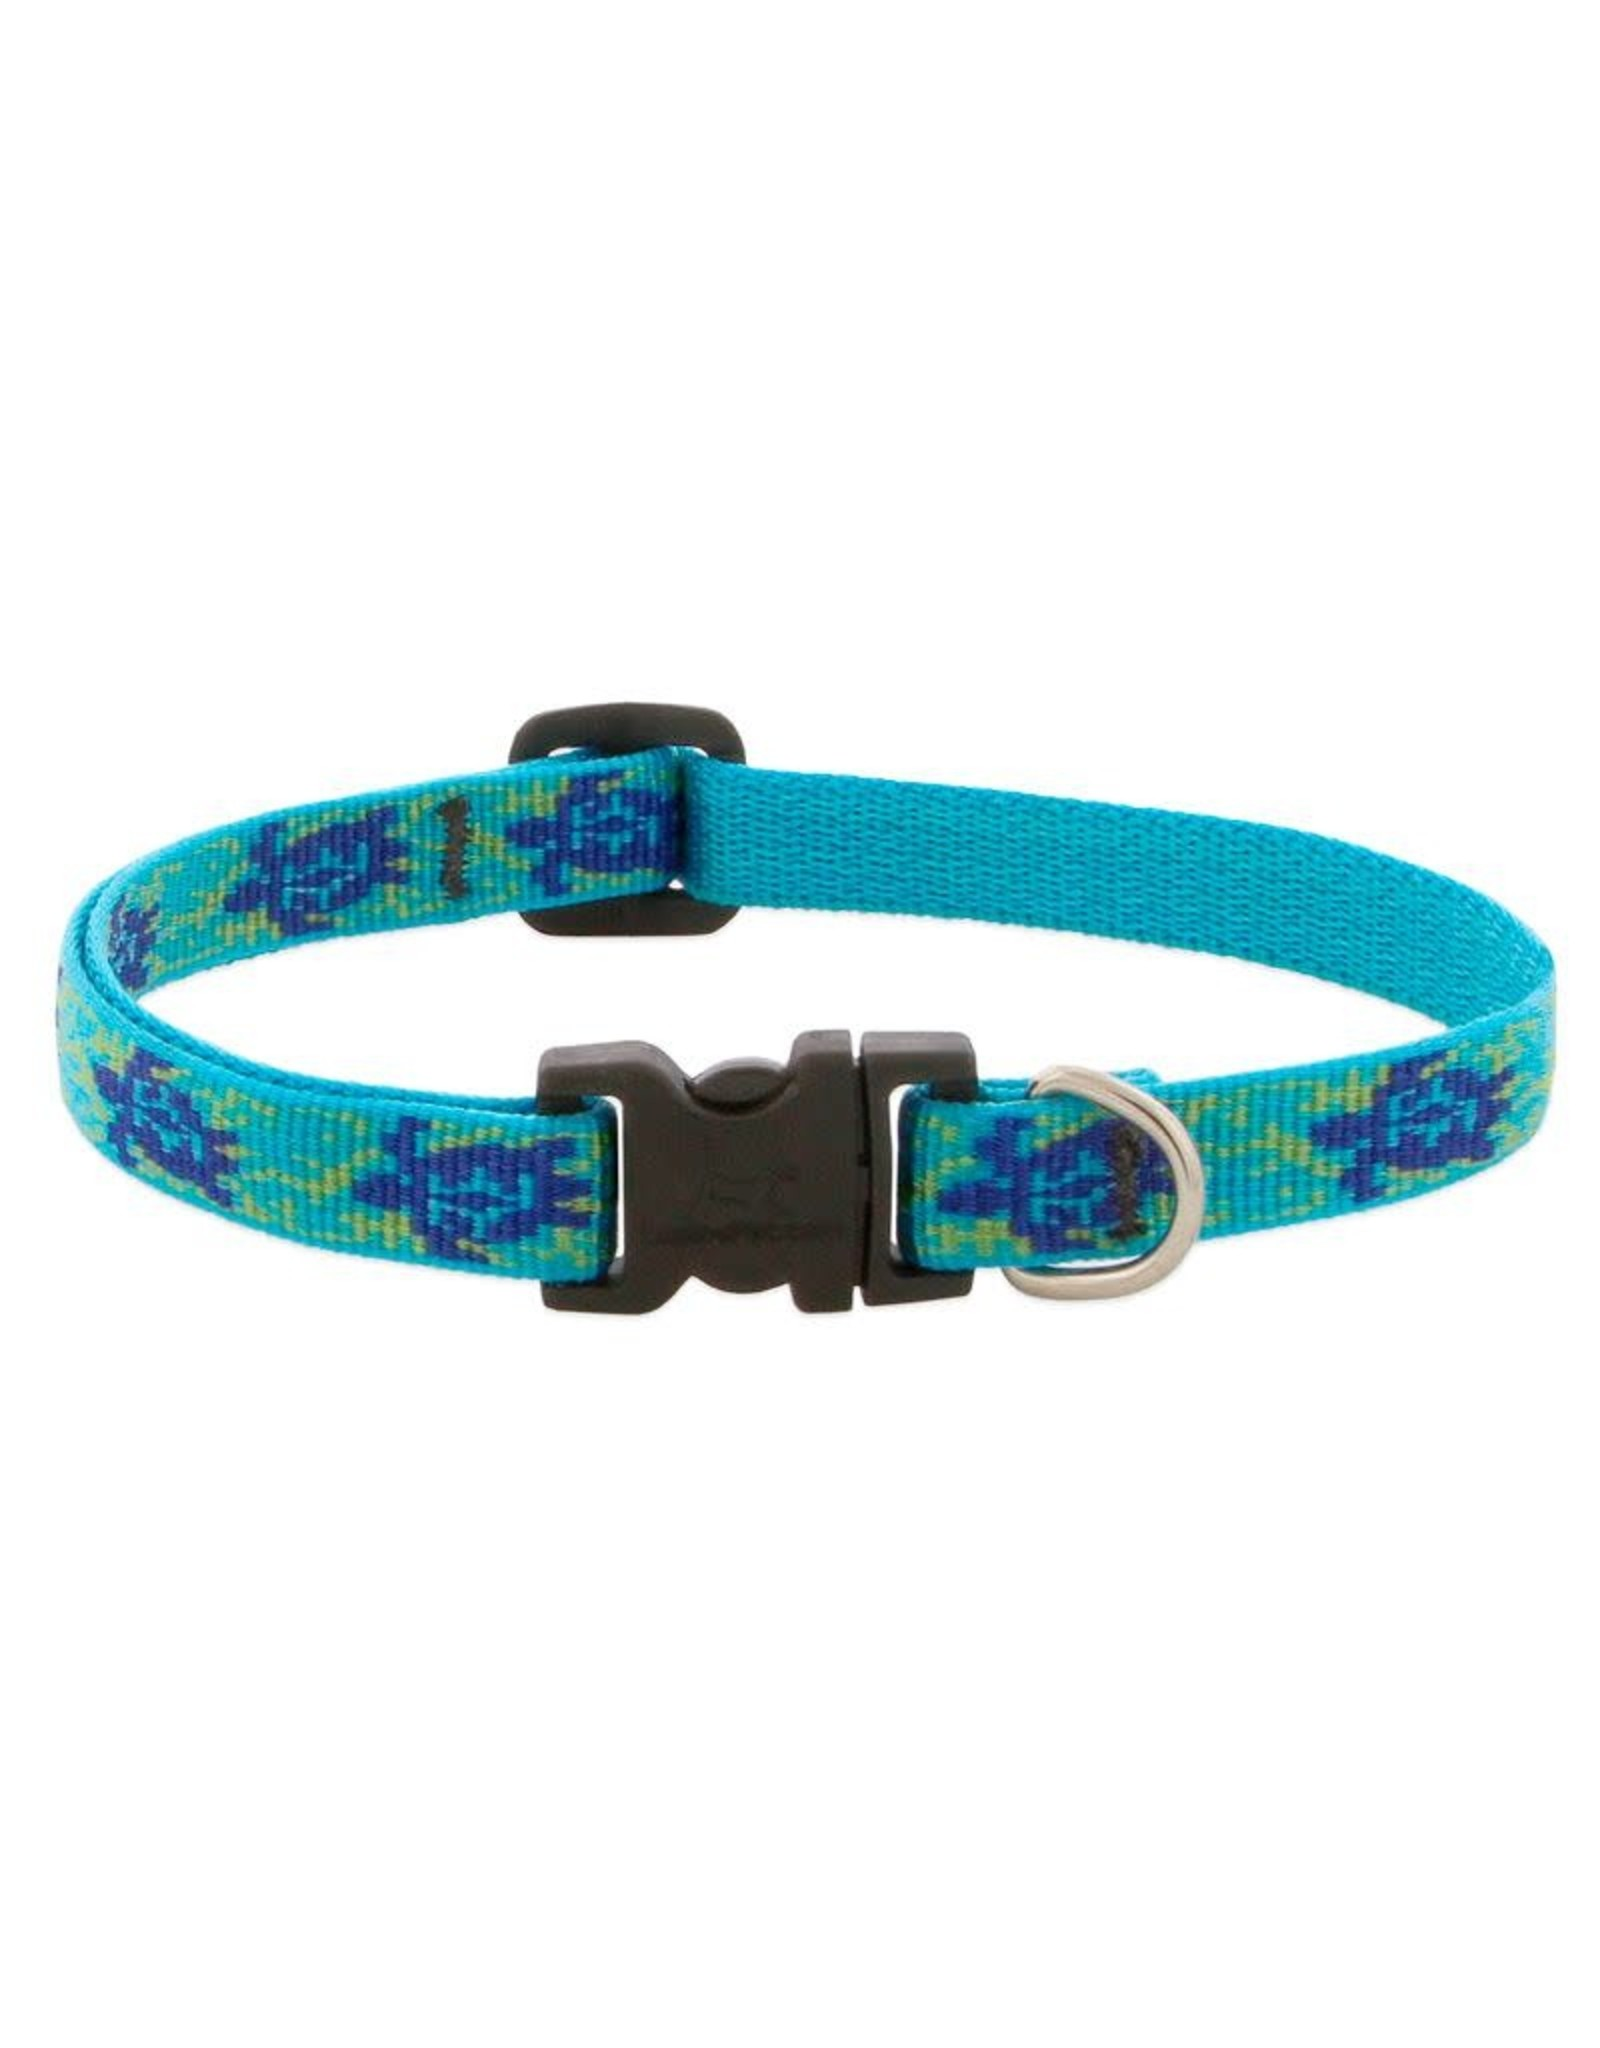 Lupine Lupine Turtle Reef Collar: 3/4 in wide, 9-14 inch